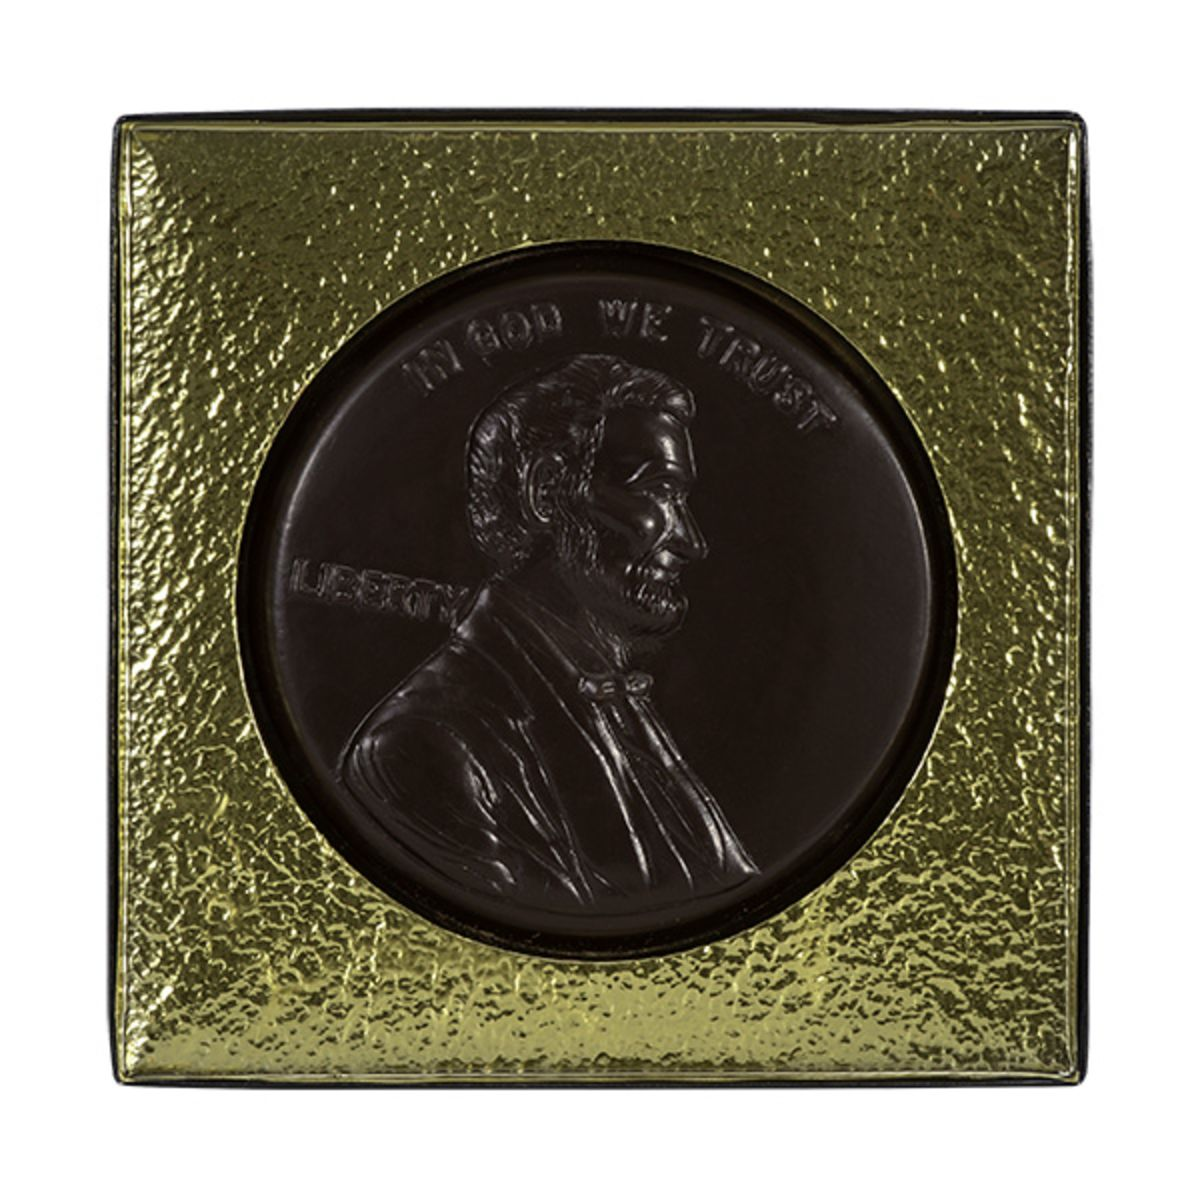 Giant-sized Dark Chocolate Lincoln Penny